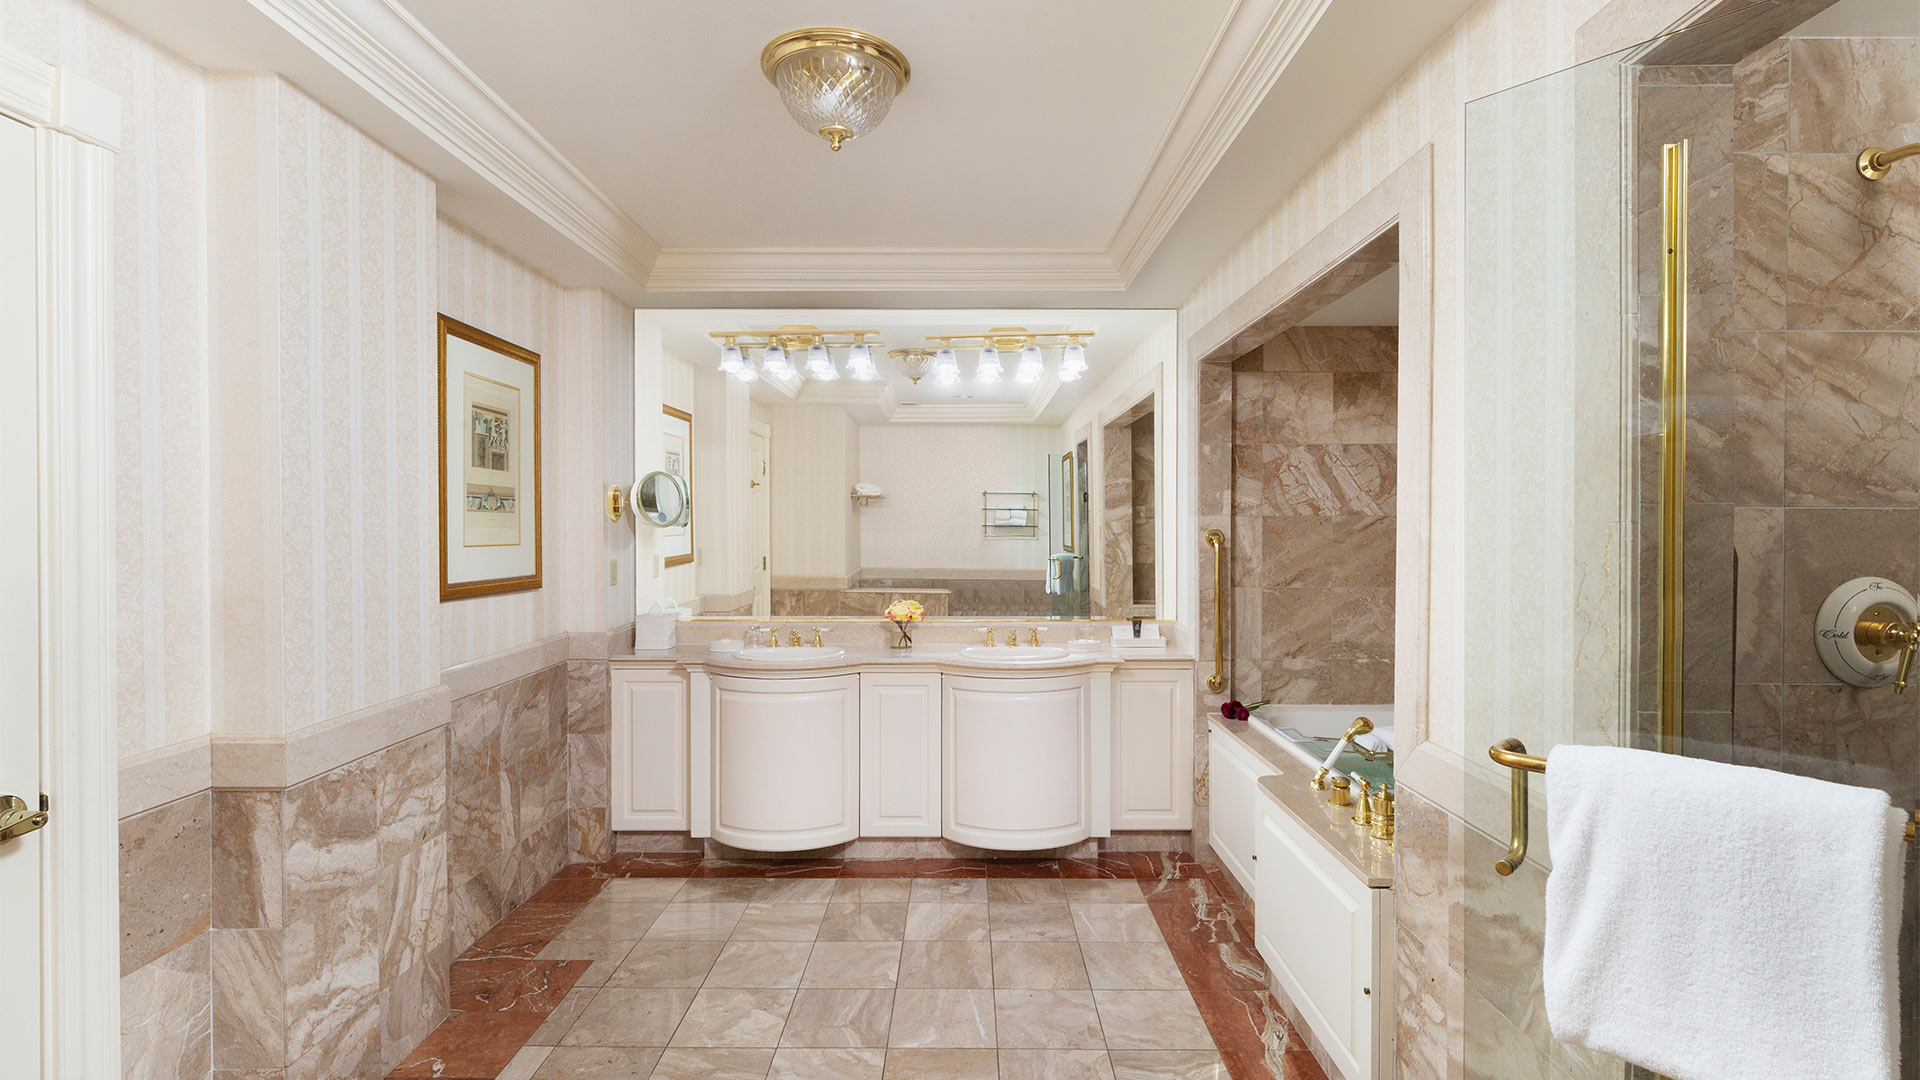 interior shot of the suite's bathroom. There is a double sink, a whirlpool bathtub and a walk in shower.